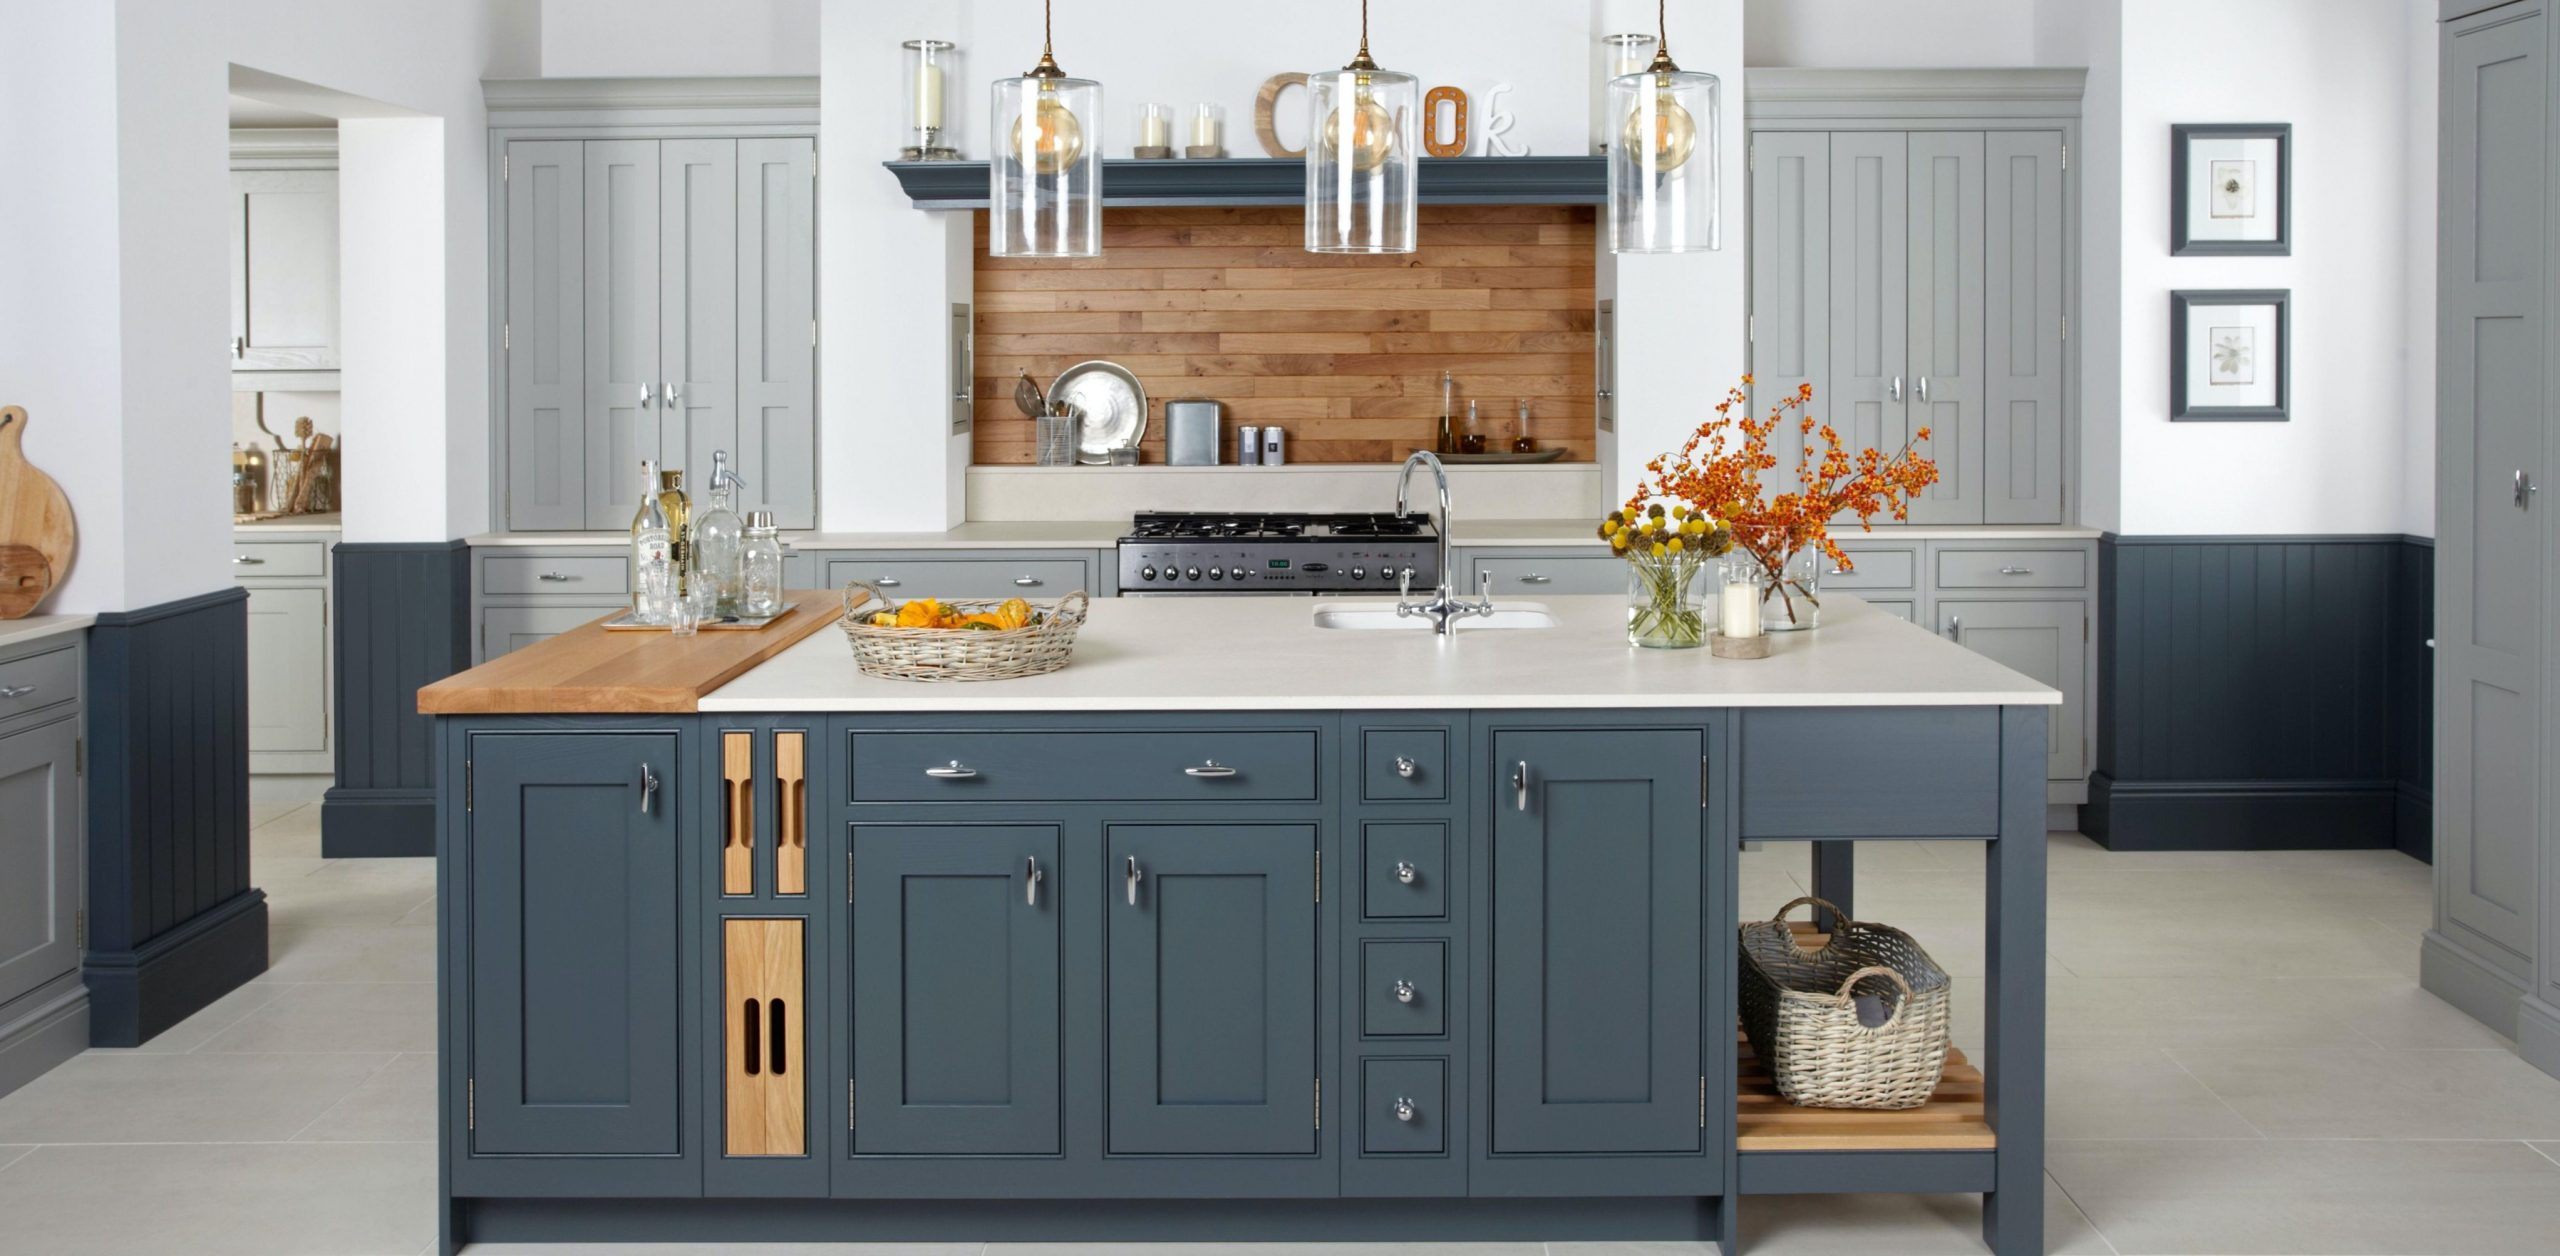 Inspiration Gallery Traditional Shaker Style Kitchen Cabinets